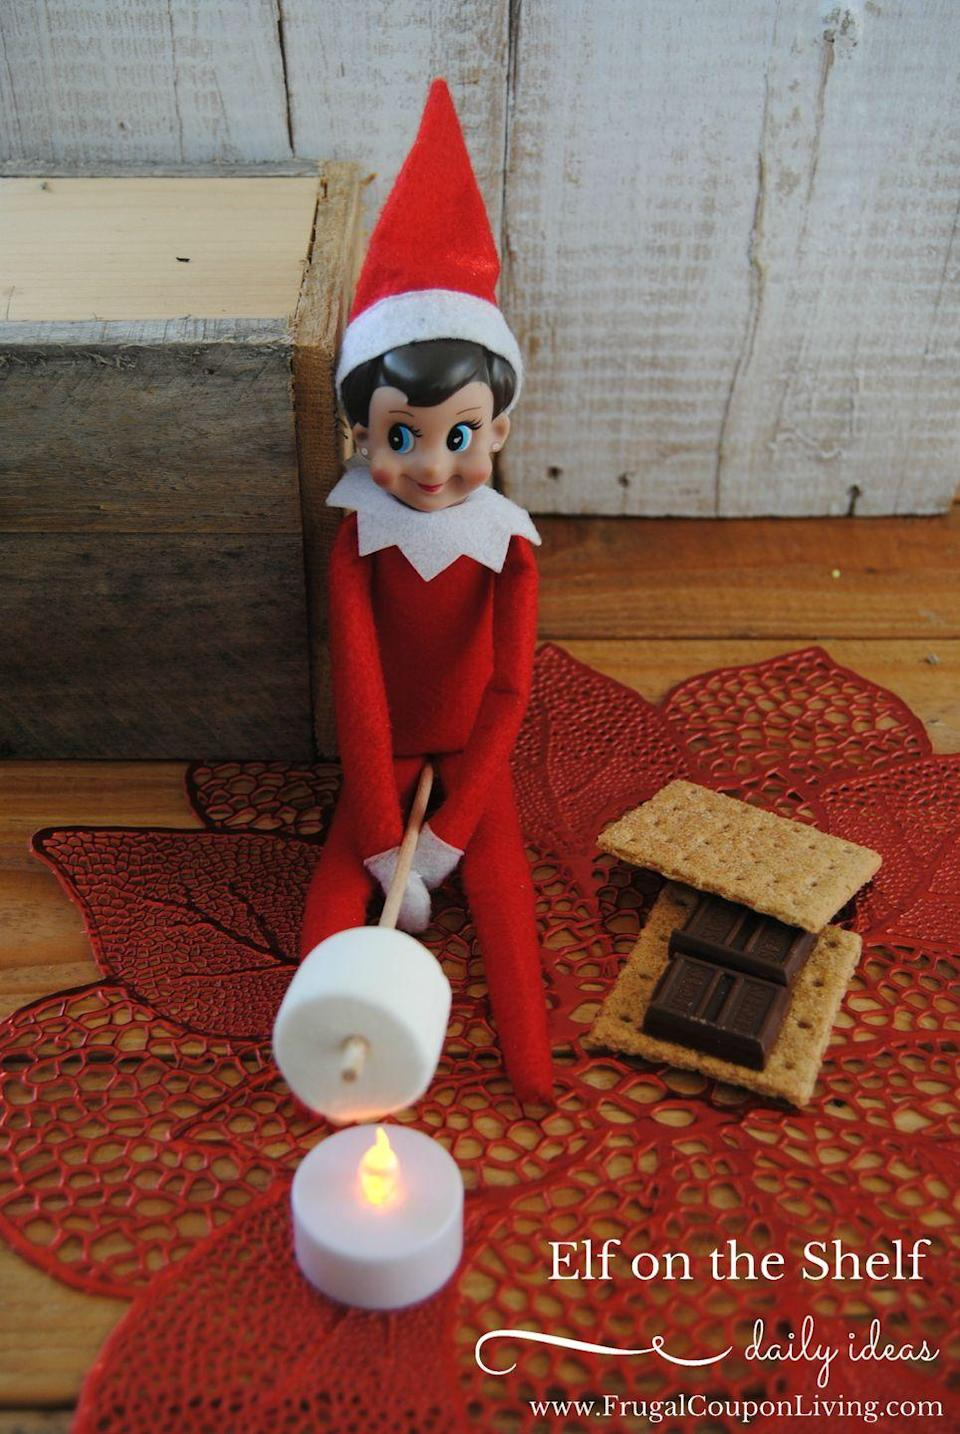 """<p>Everybody loves the classic campfire snack—even elves.</p><p><strong>Get the tutorial at <a href=""""https://www.frugalcouponliving.com/elf-on-the-shelf-ideas-elf-makes-smores/"""" rel=""""nofollow noopener"""" target=""""_blank"""" data-ylk=""""slk:Frugal Coupon Living"""" class=""""link rapid-noclick-resp"""">Frugal Coupon Living</a>.</strong></p><p><a class=""""link rapid-noclick-resp"""" href=""""https://www.amazon.com/Flameless-Candles-Battery-Holidays-Decoration/dp/B0799G5W6Y/ref=sr_1_5?tag=syn-yahoo-20&ascsubtag=%5Bartid%7C10050.g.22690552%5Bsrc%7Cyahoo-us"""" rel=""""nofollow noopener"""" target=""""_blank"""" data-ylk=""""slk:SHOP LED TEA LIGHTS""""><strong>SHOP LED TEA LIGHTS</strong> </a></p>"""